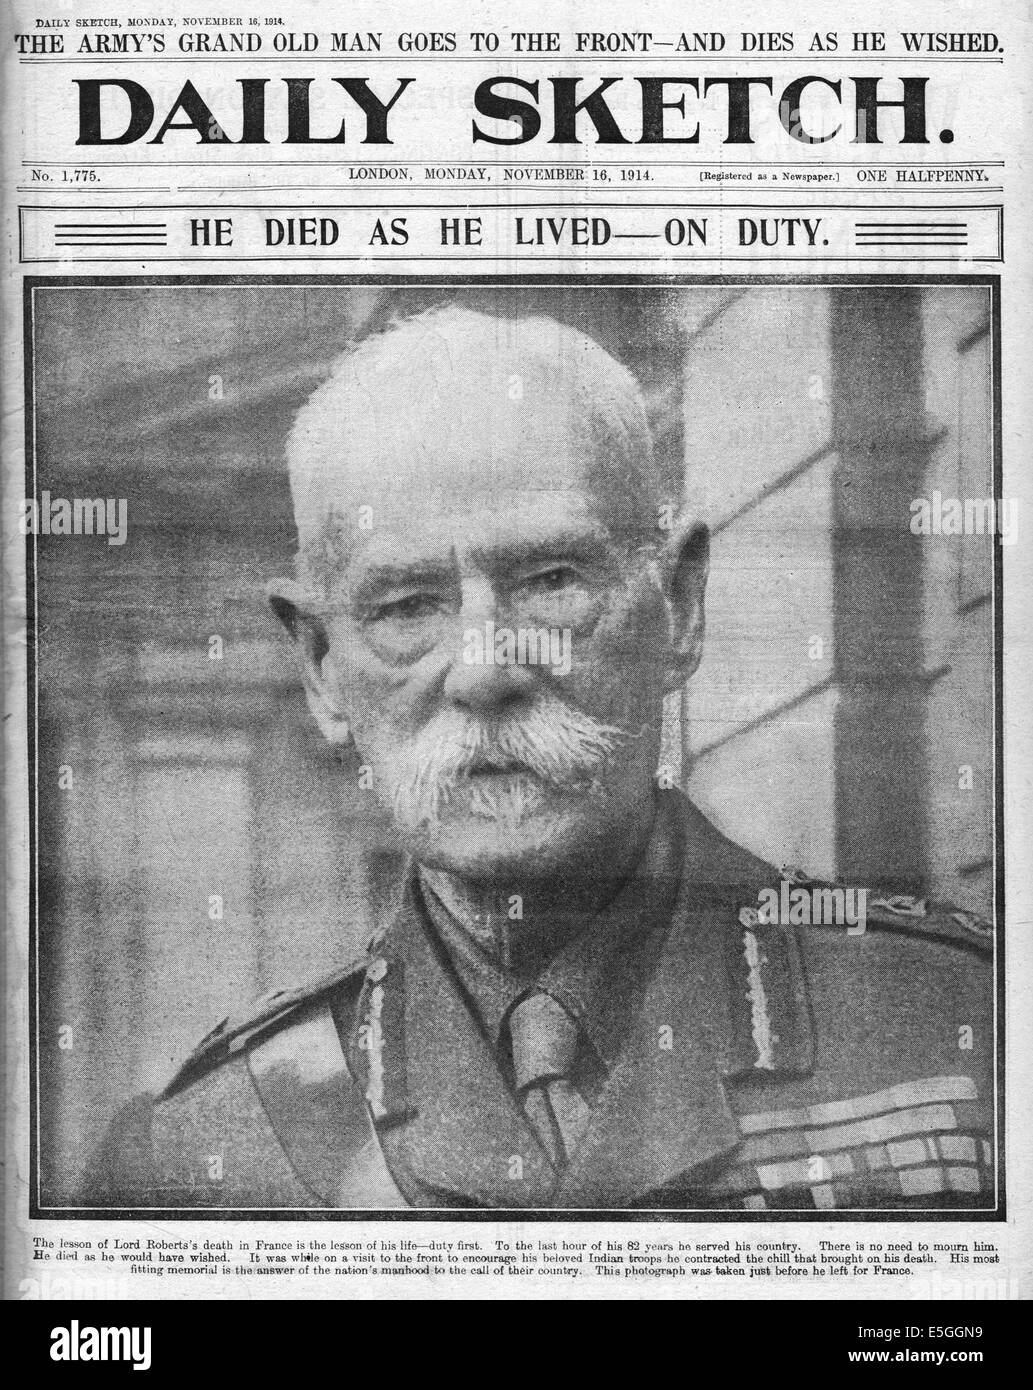 1914 Daily Sketch front page reporting Death of Lord Roberts - Stock Image